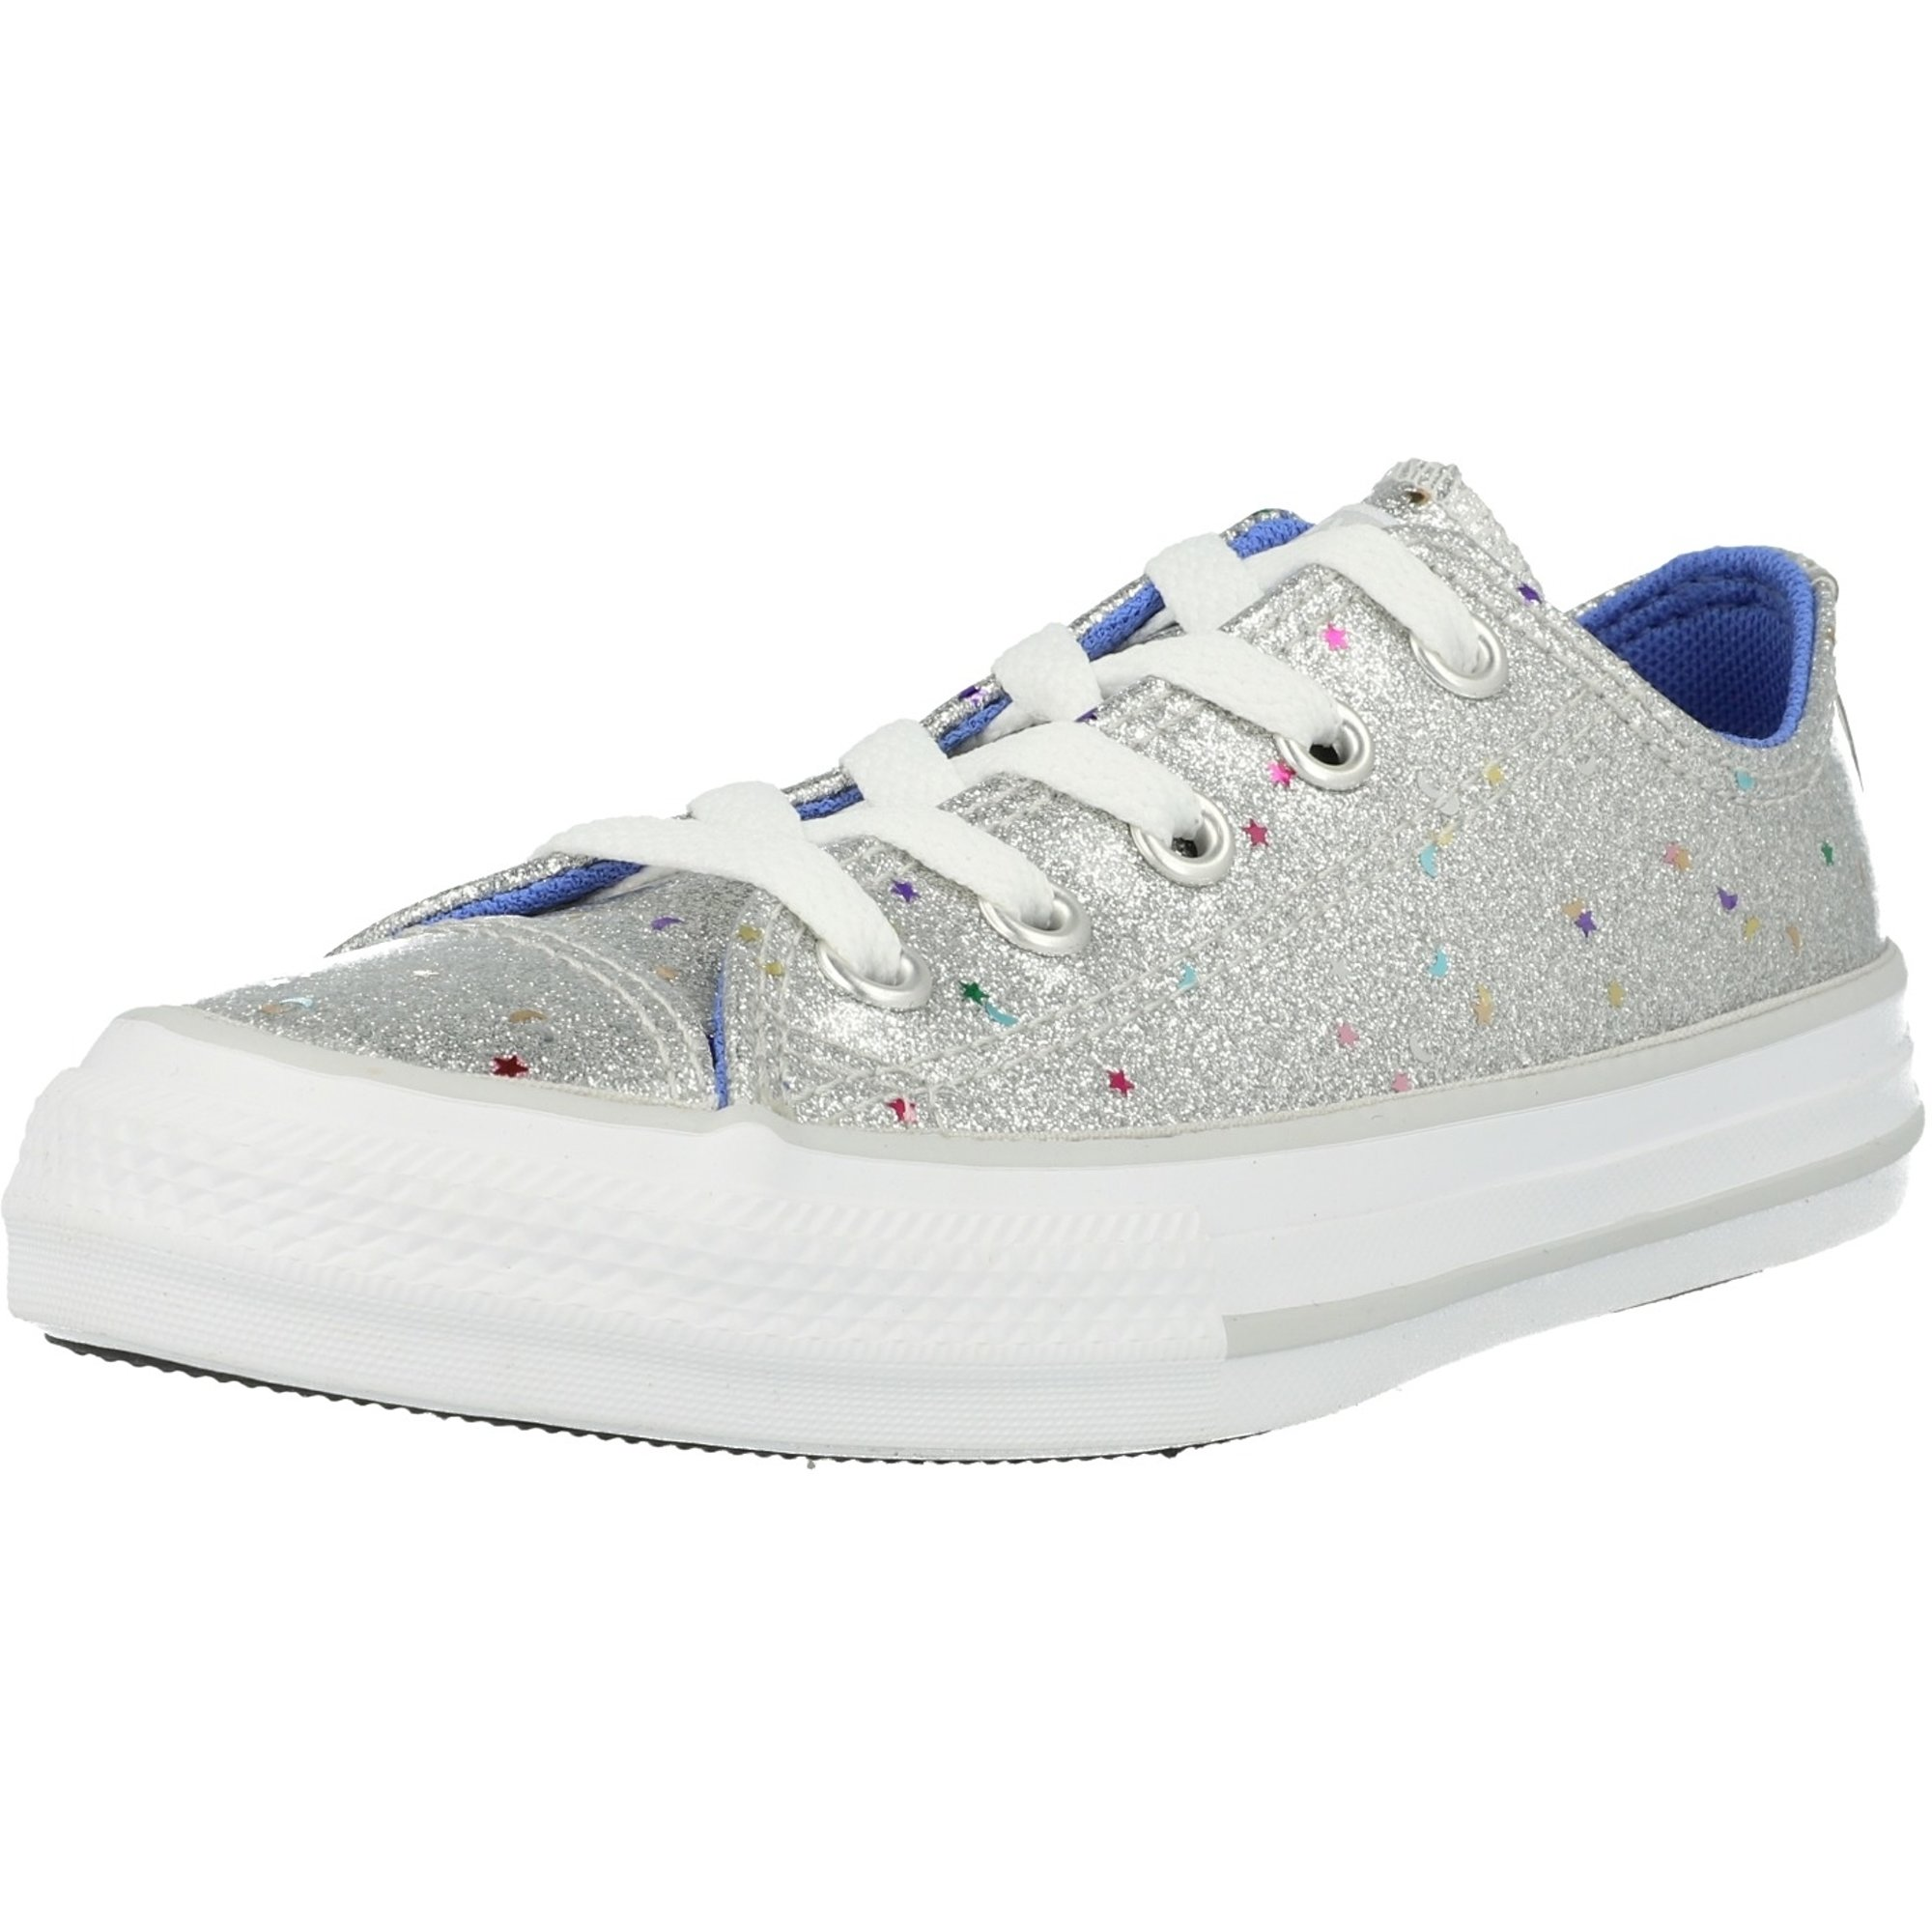 2converse all star neonato 0 a 6 mesi